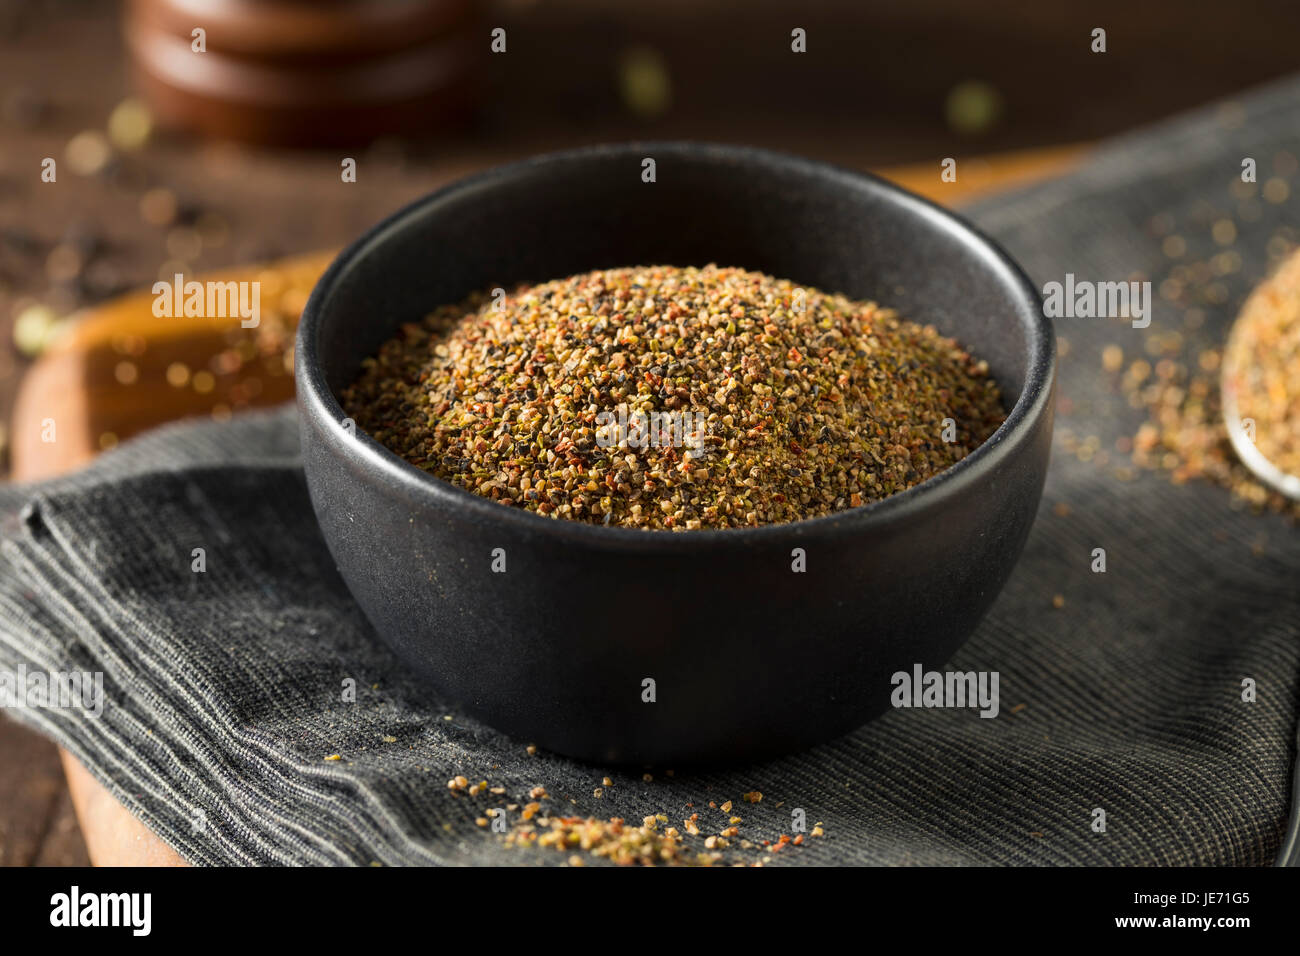 Dry Organic Mixed Ground Pepper Blend in a Bowl - Stock Image